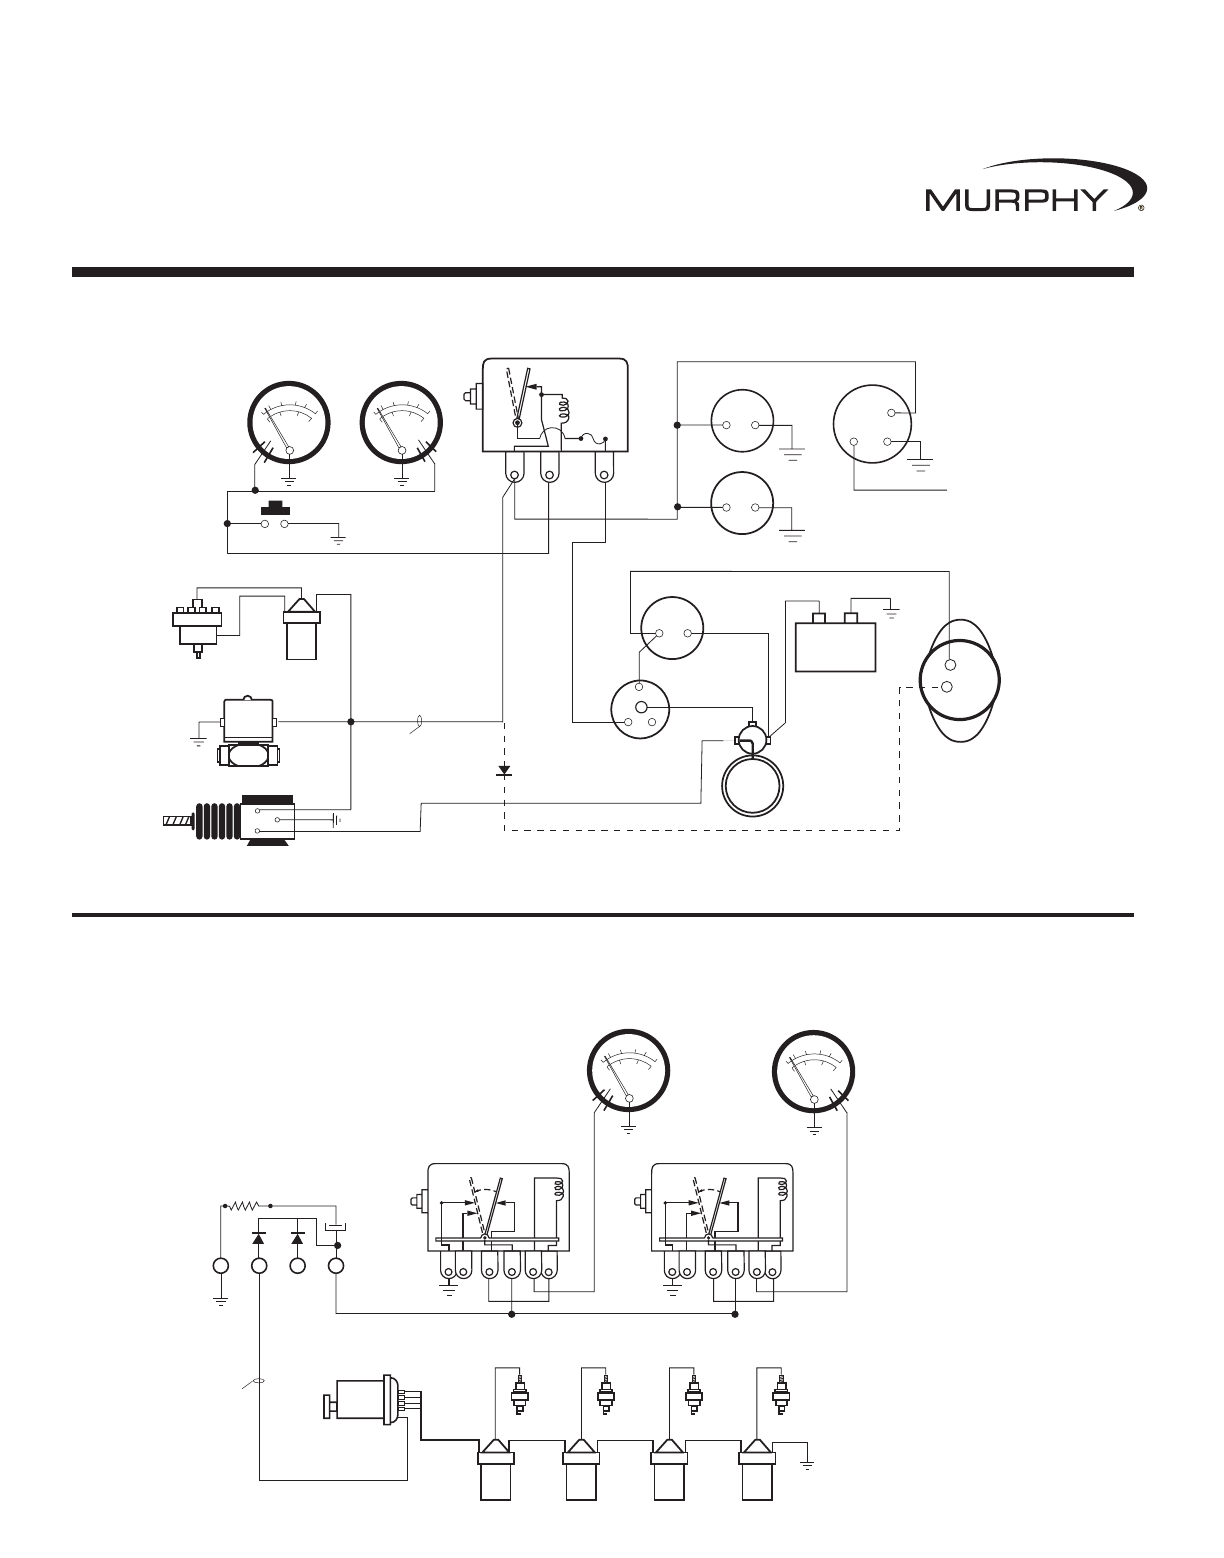 Momentary Switch For Automotive Use Manual Guide